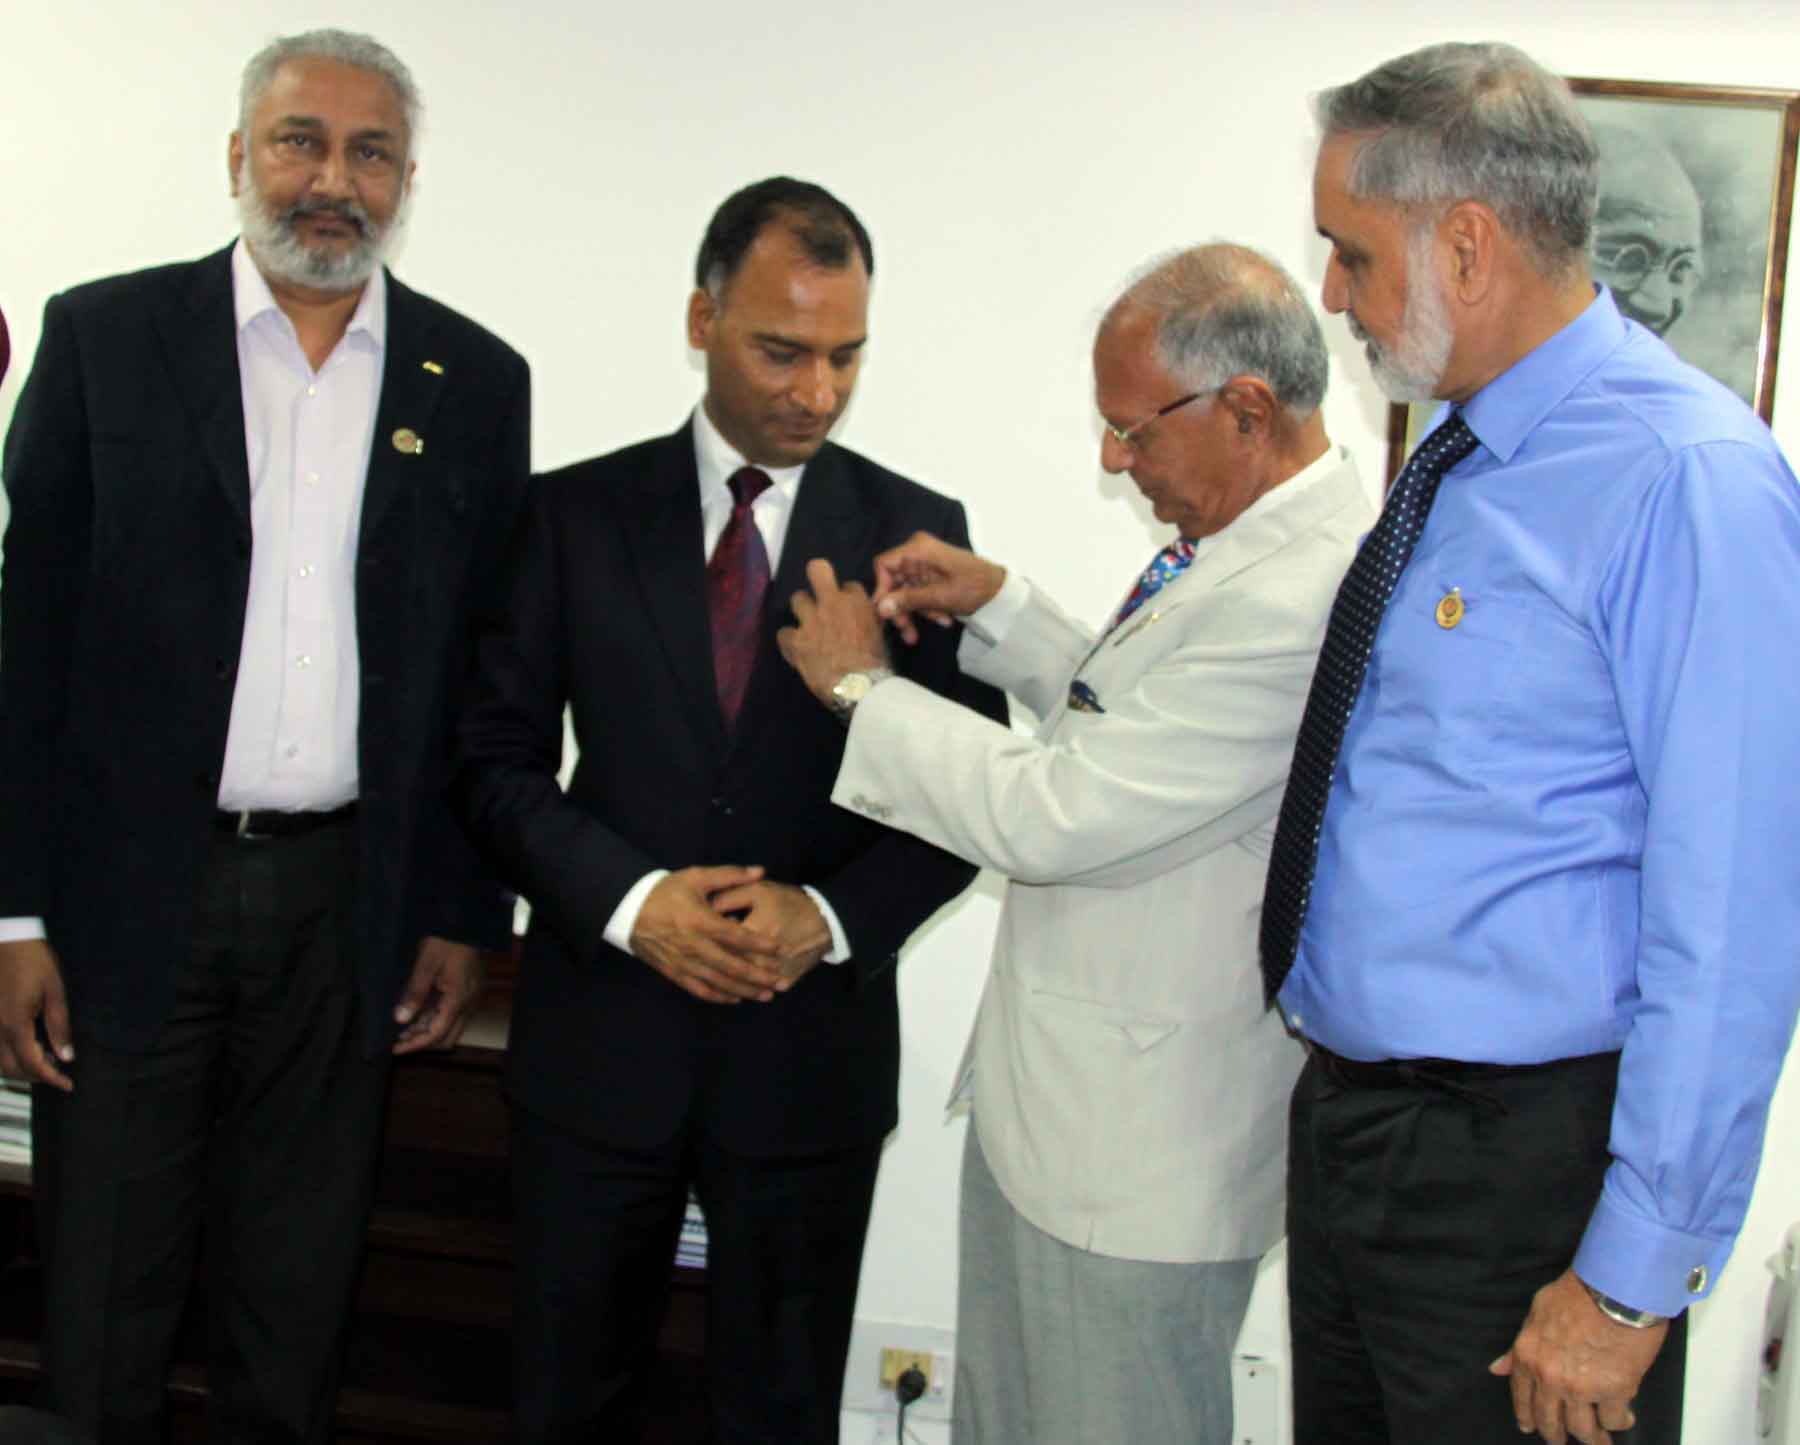 Chairman of the Company of Master Mariners of India, Chandigarh Chapter, Capt. M.S. Kahlon pinning the Merchant Navy Flag on the Lapel of Adviser to the Administrator, UT, Chandigarh, Mr. Vijay Dev, to mark the celebrations of National Maritime Week-2015 at UT Secretariat, Chandigarh on Tuesday, March 31, 2015.